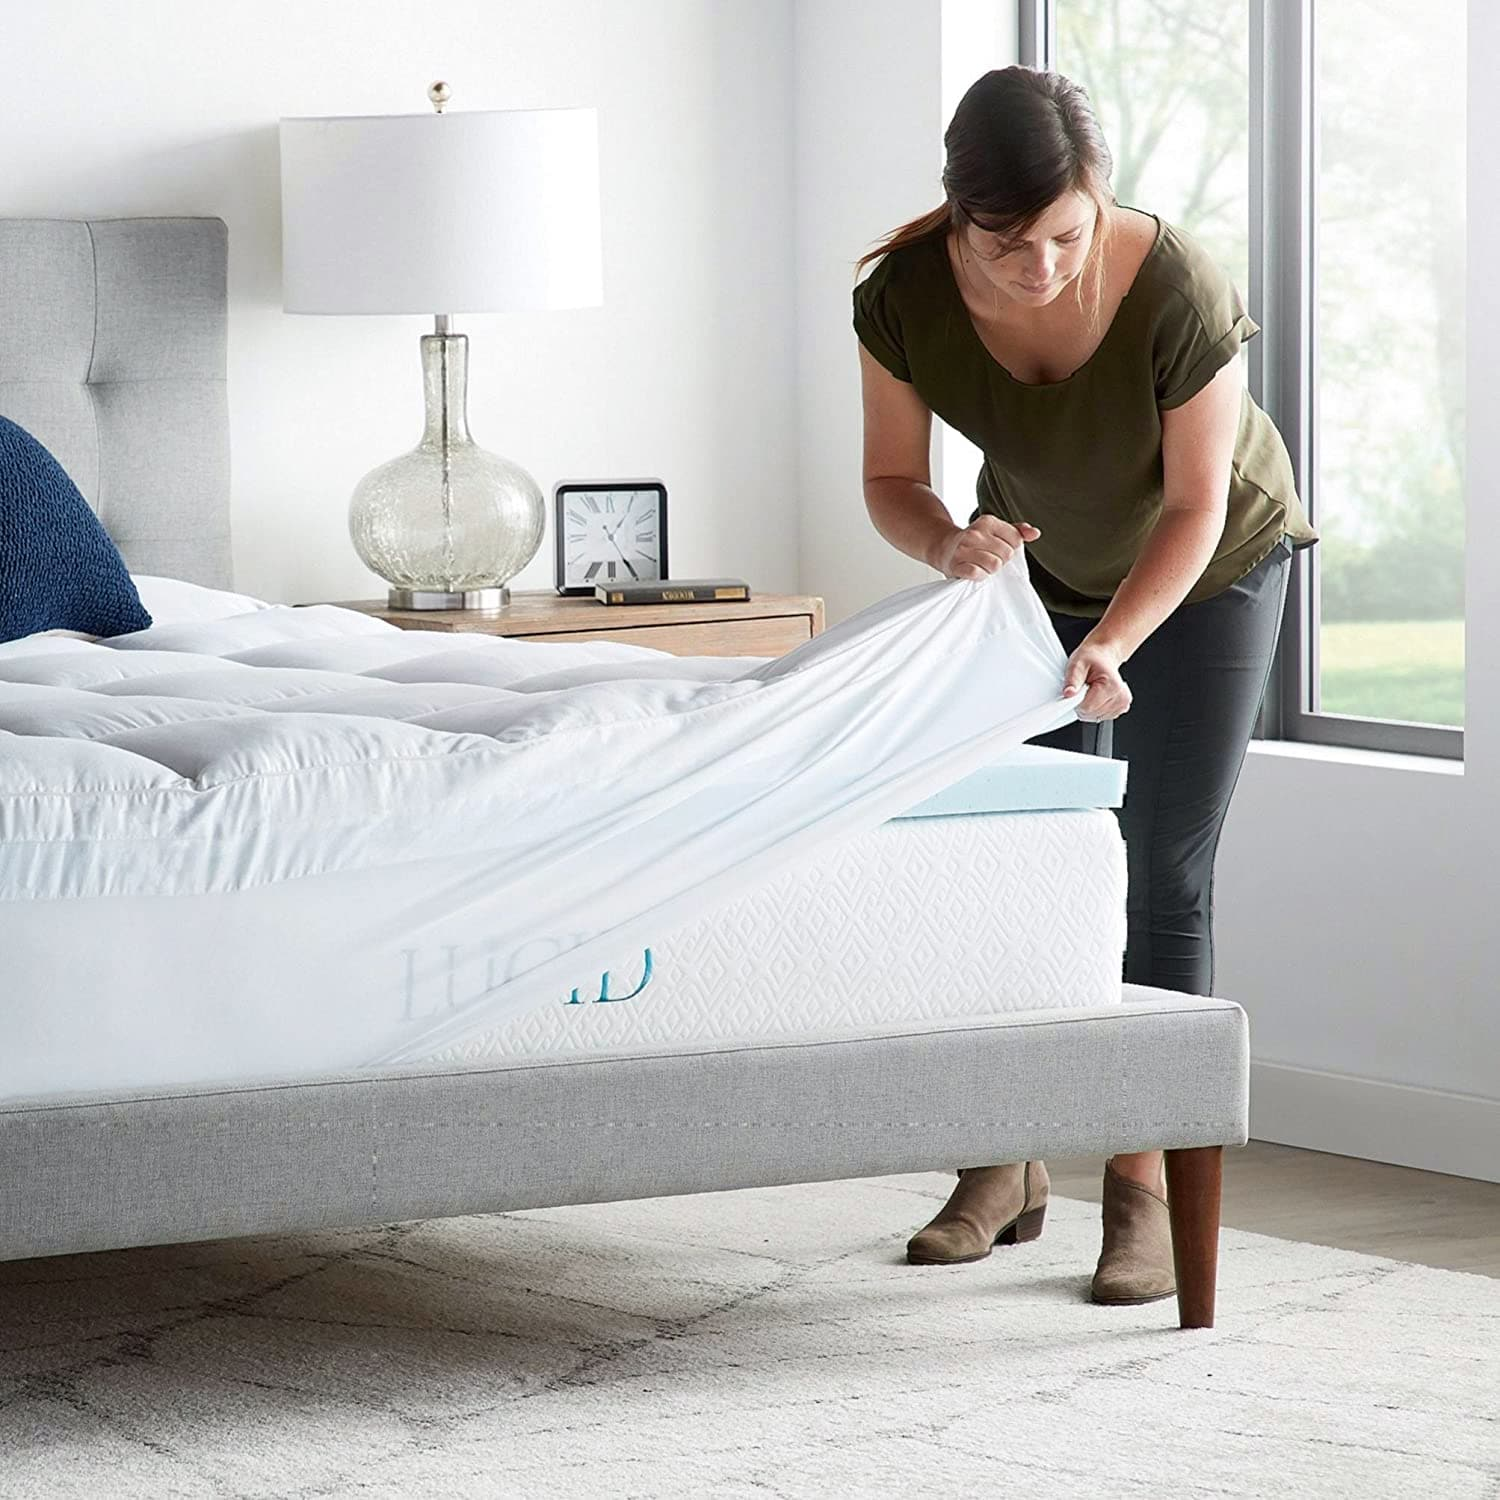 LUCID 4 Inch Gel Memory Foam Mattress Topper review